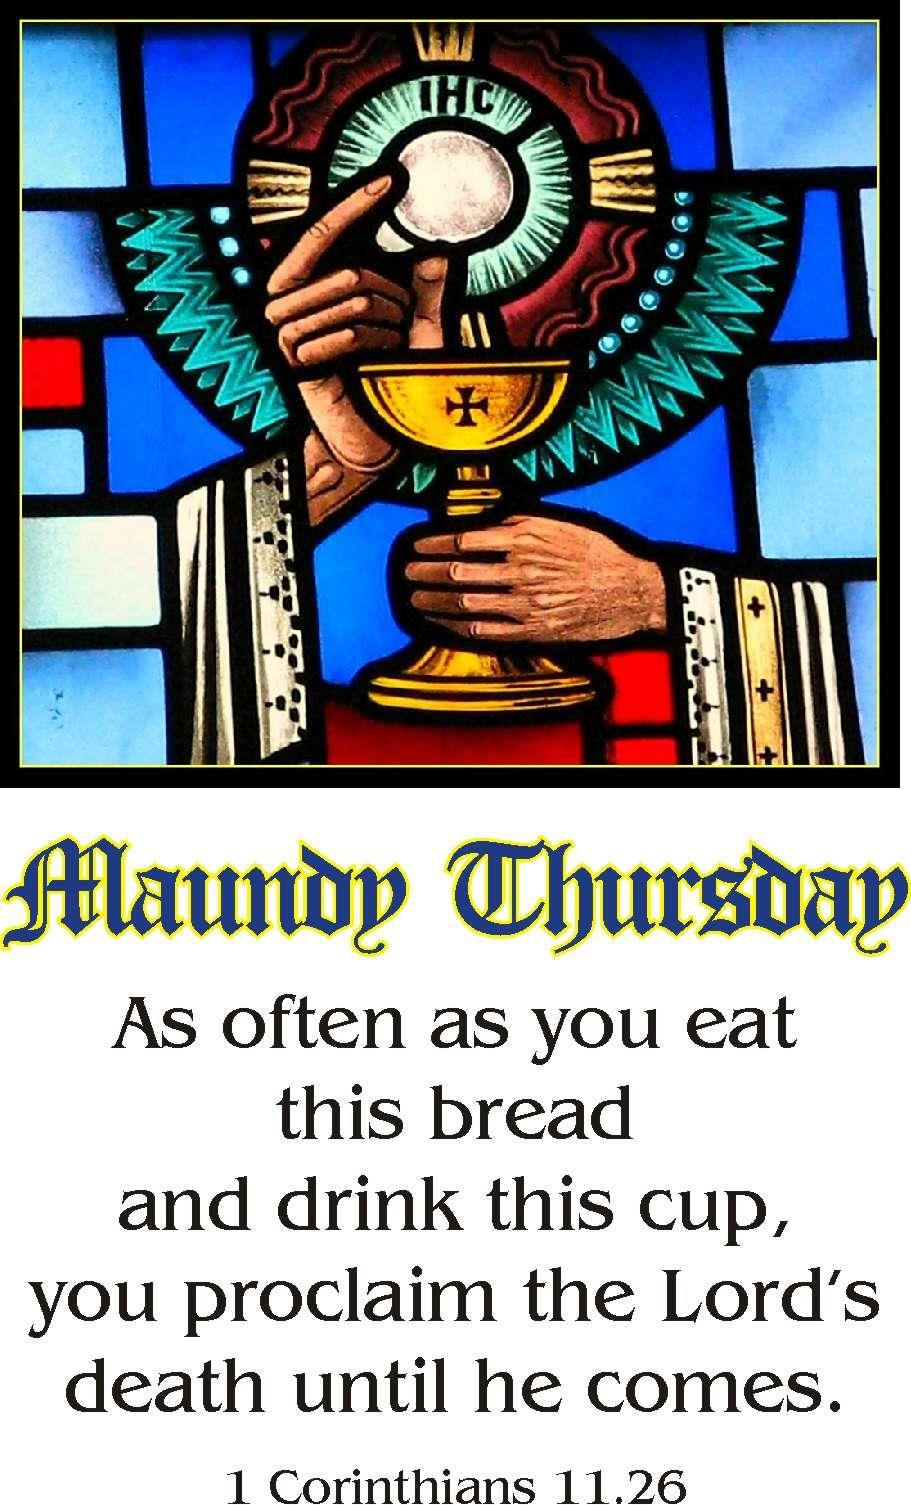 April 2 nd Maundy Thursday Liturgy of the Last Supper with Footwashing and Stripping of the Altar